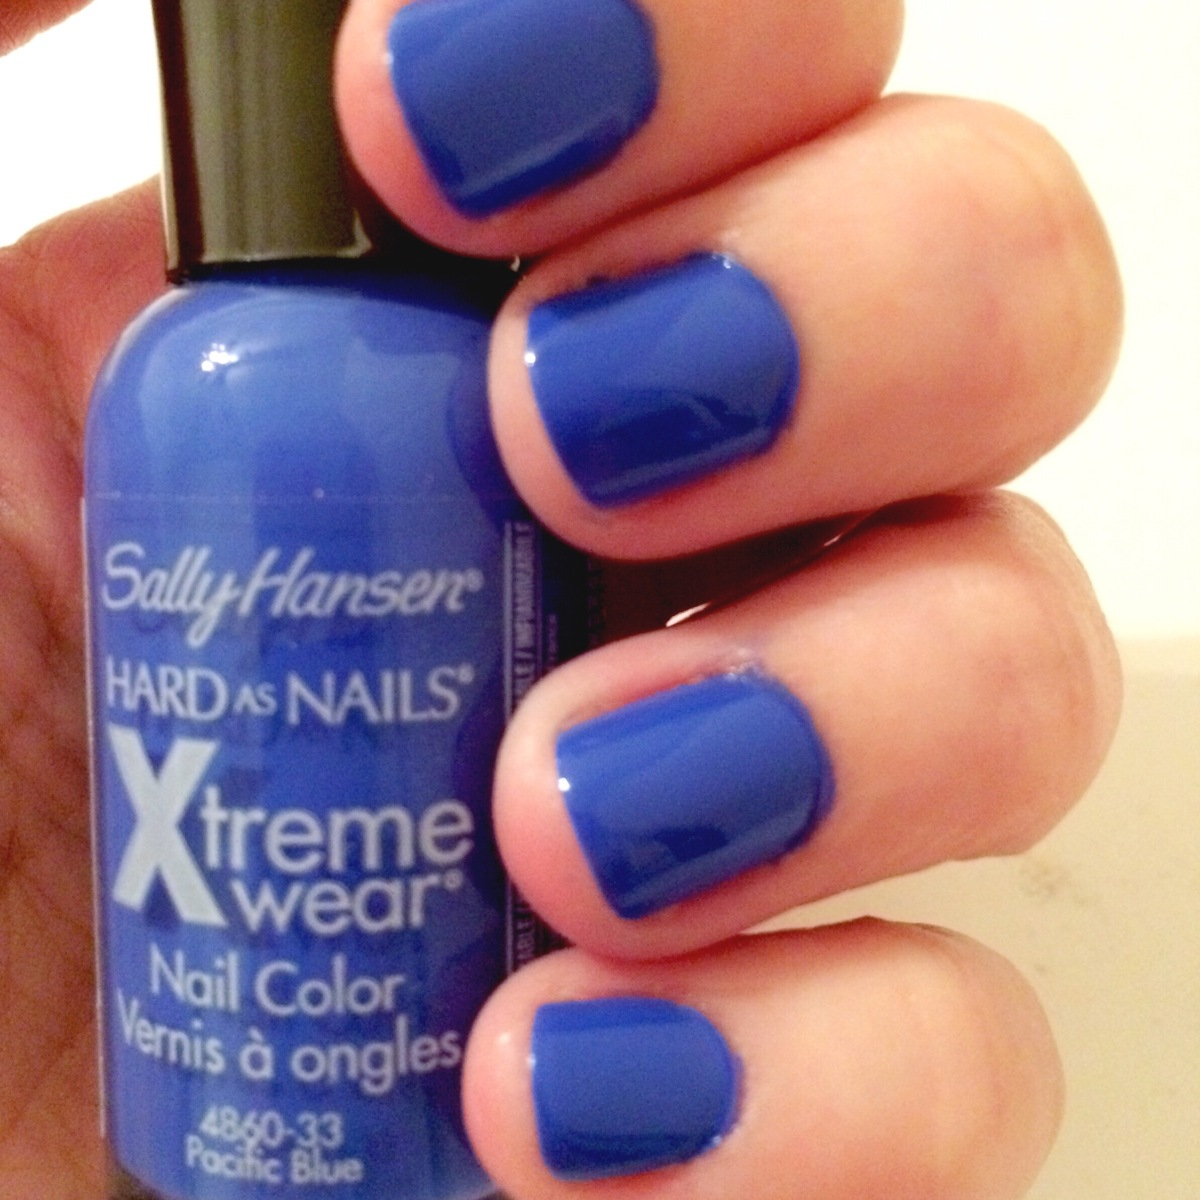 The One and Only – Sally Hansen PacificBlue